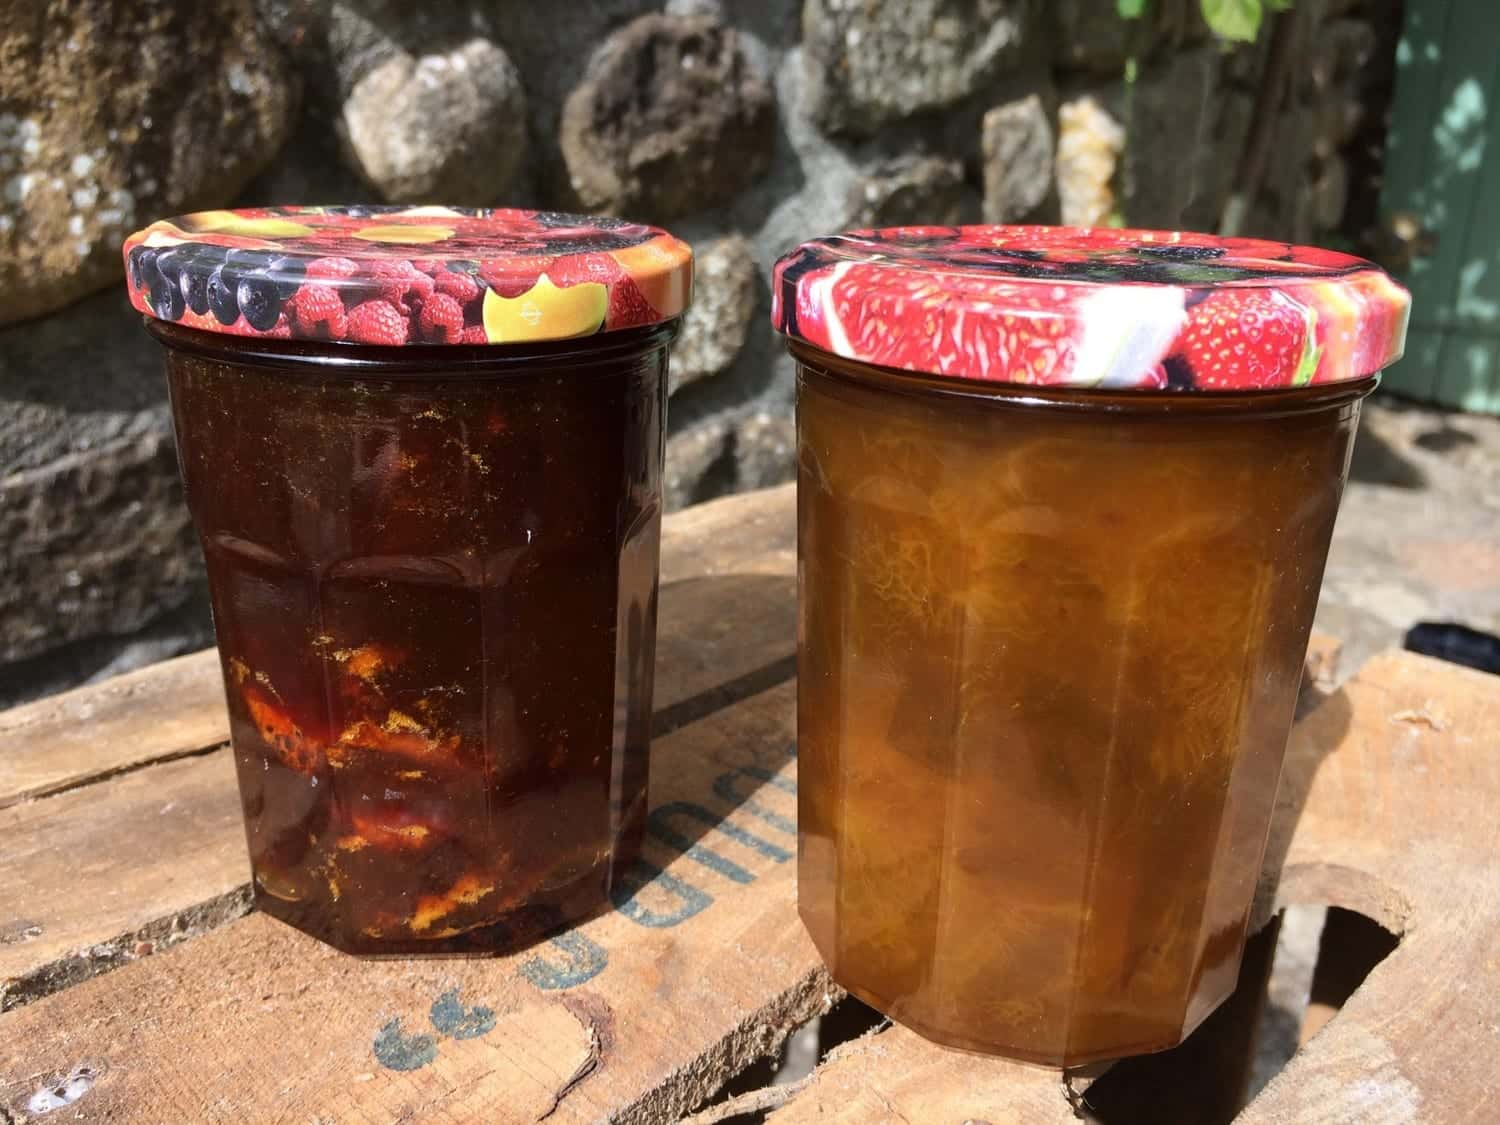 Two pots of homemade jam